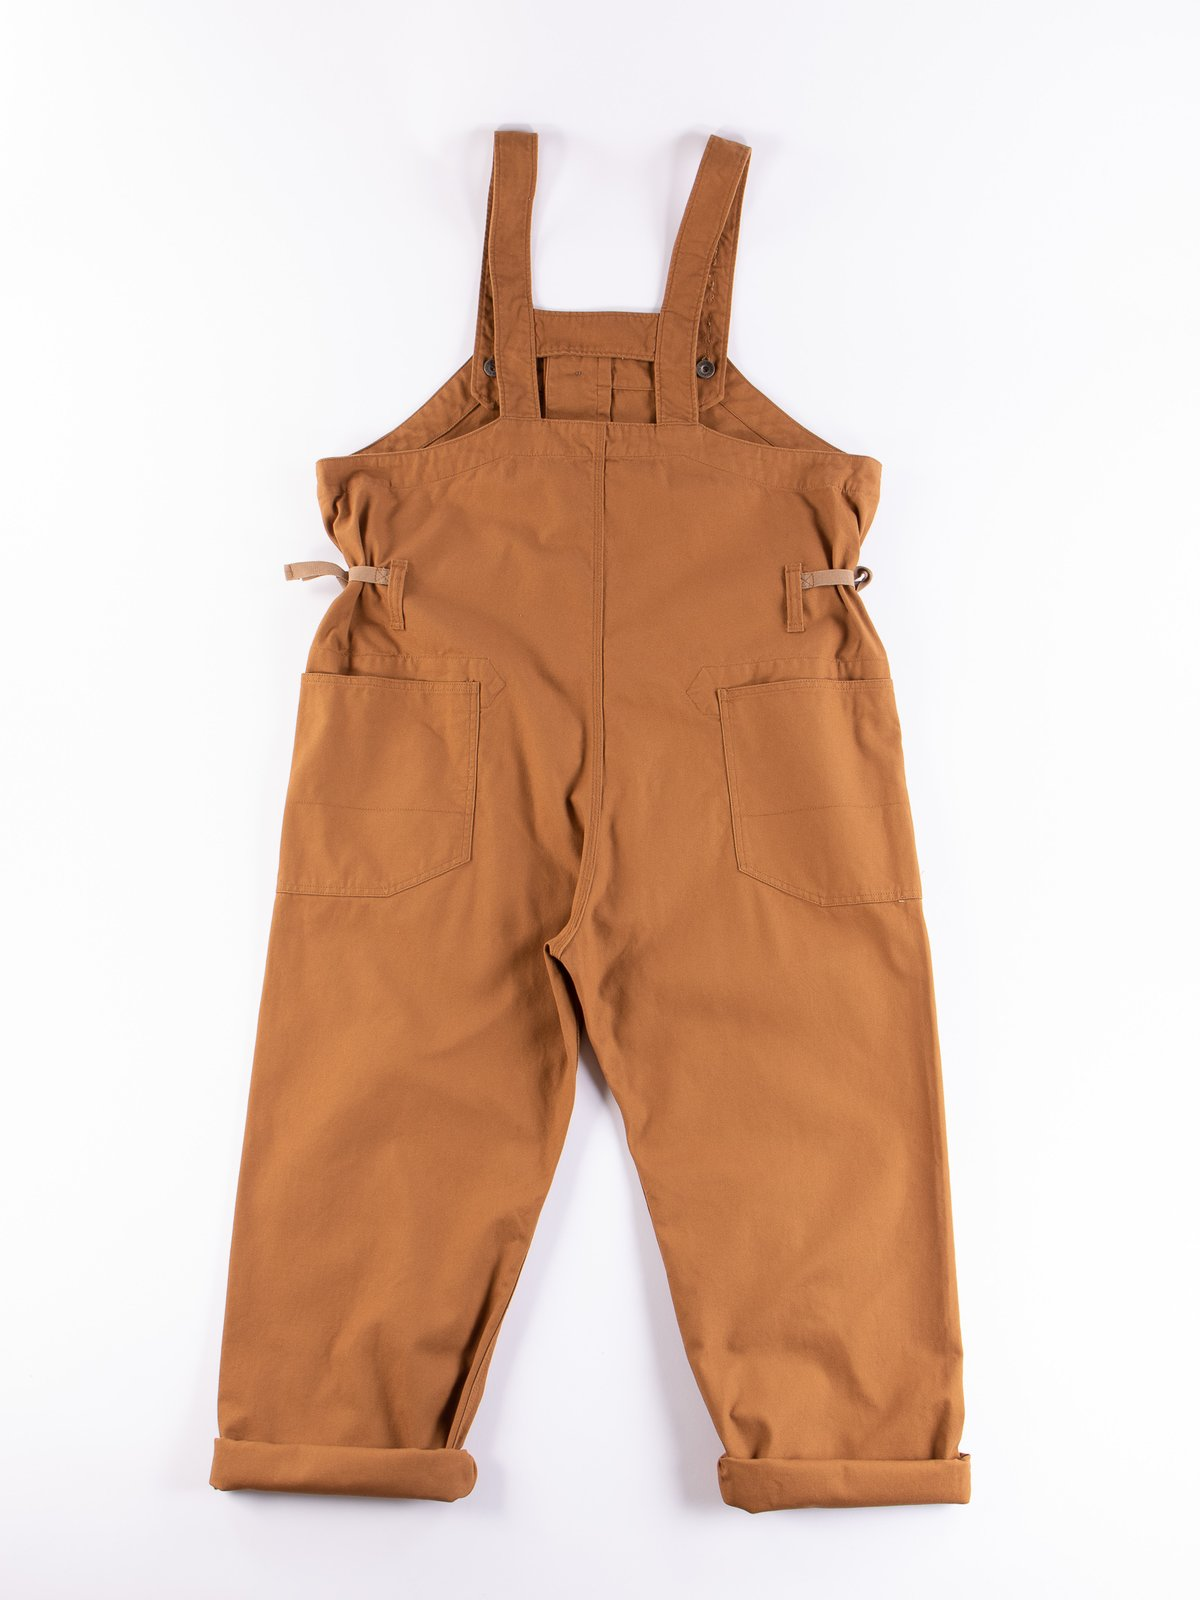 Brown 12oz Duck Canvas Waders - Image 7